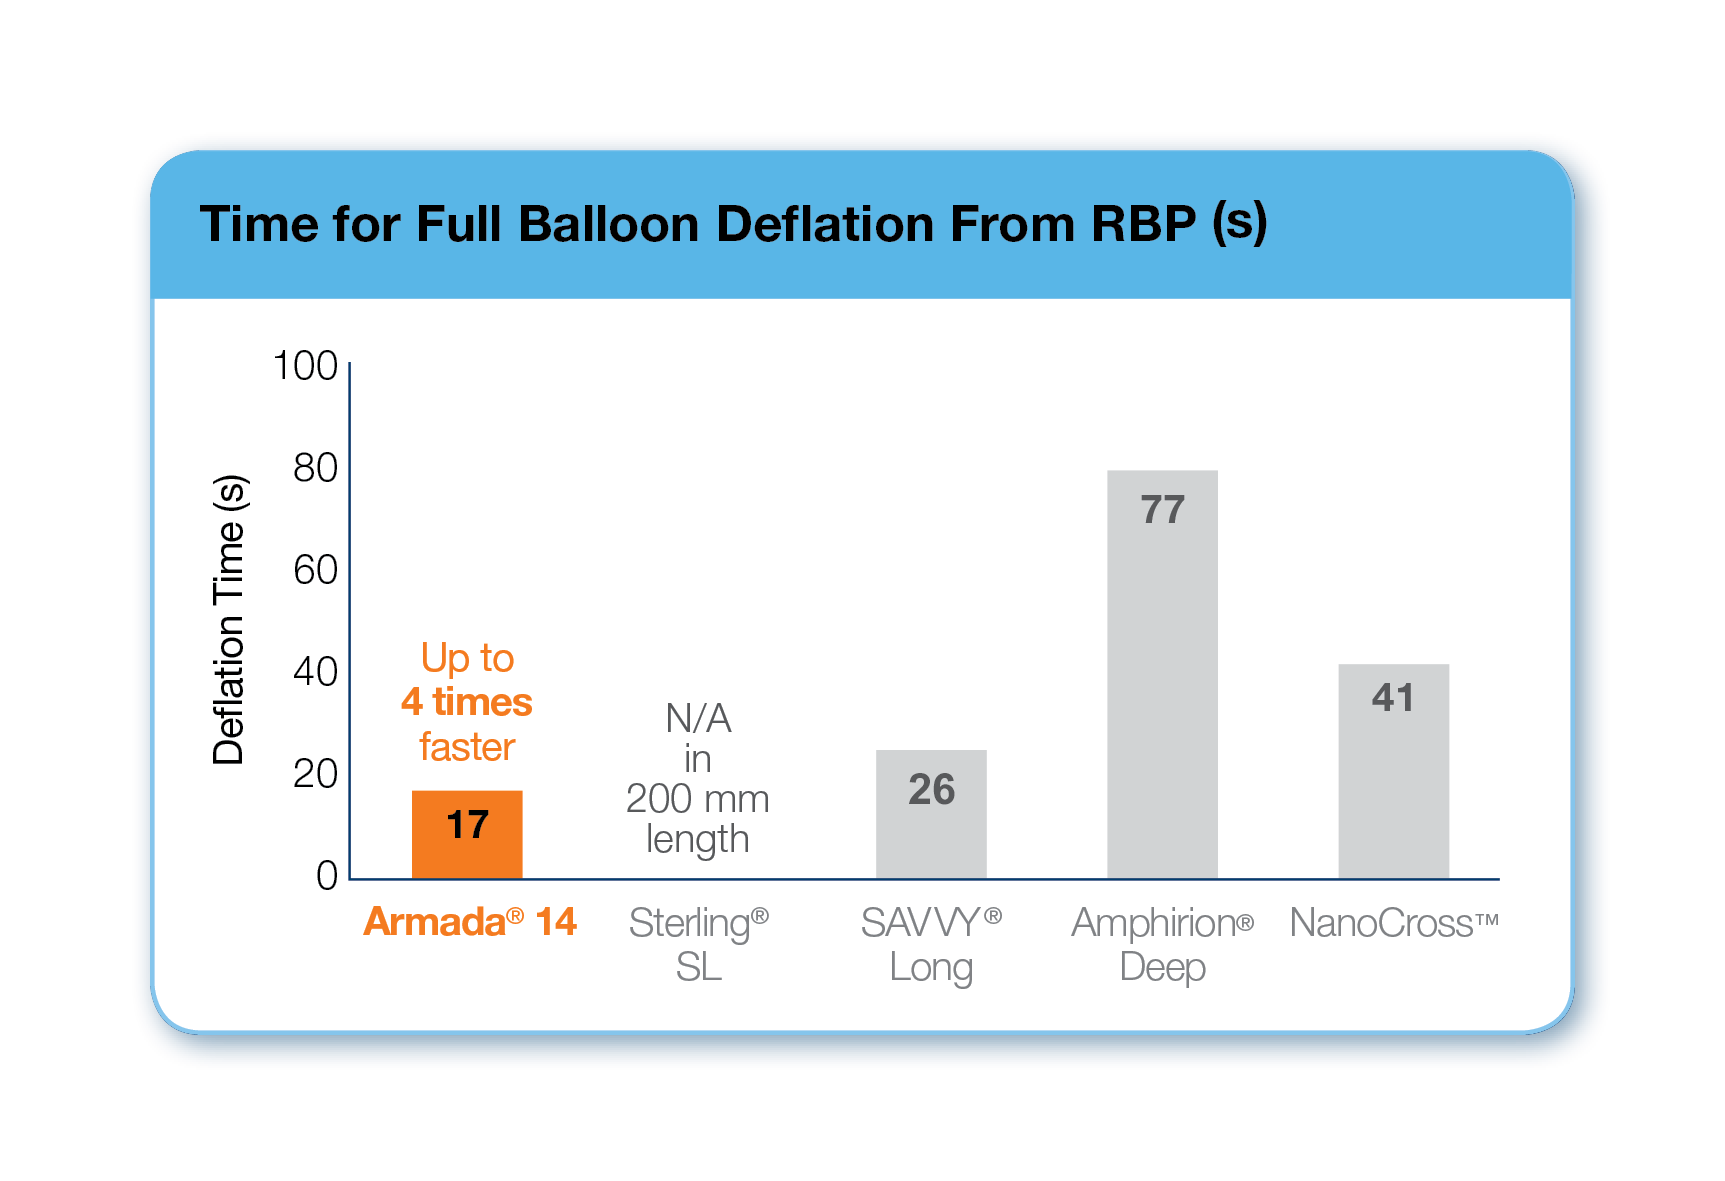 Armada 14 Time for Full Balloon Deflation from RBP